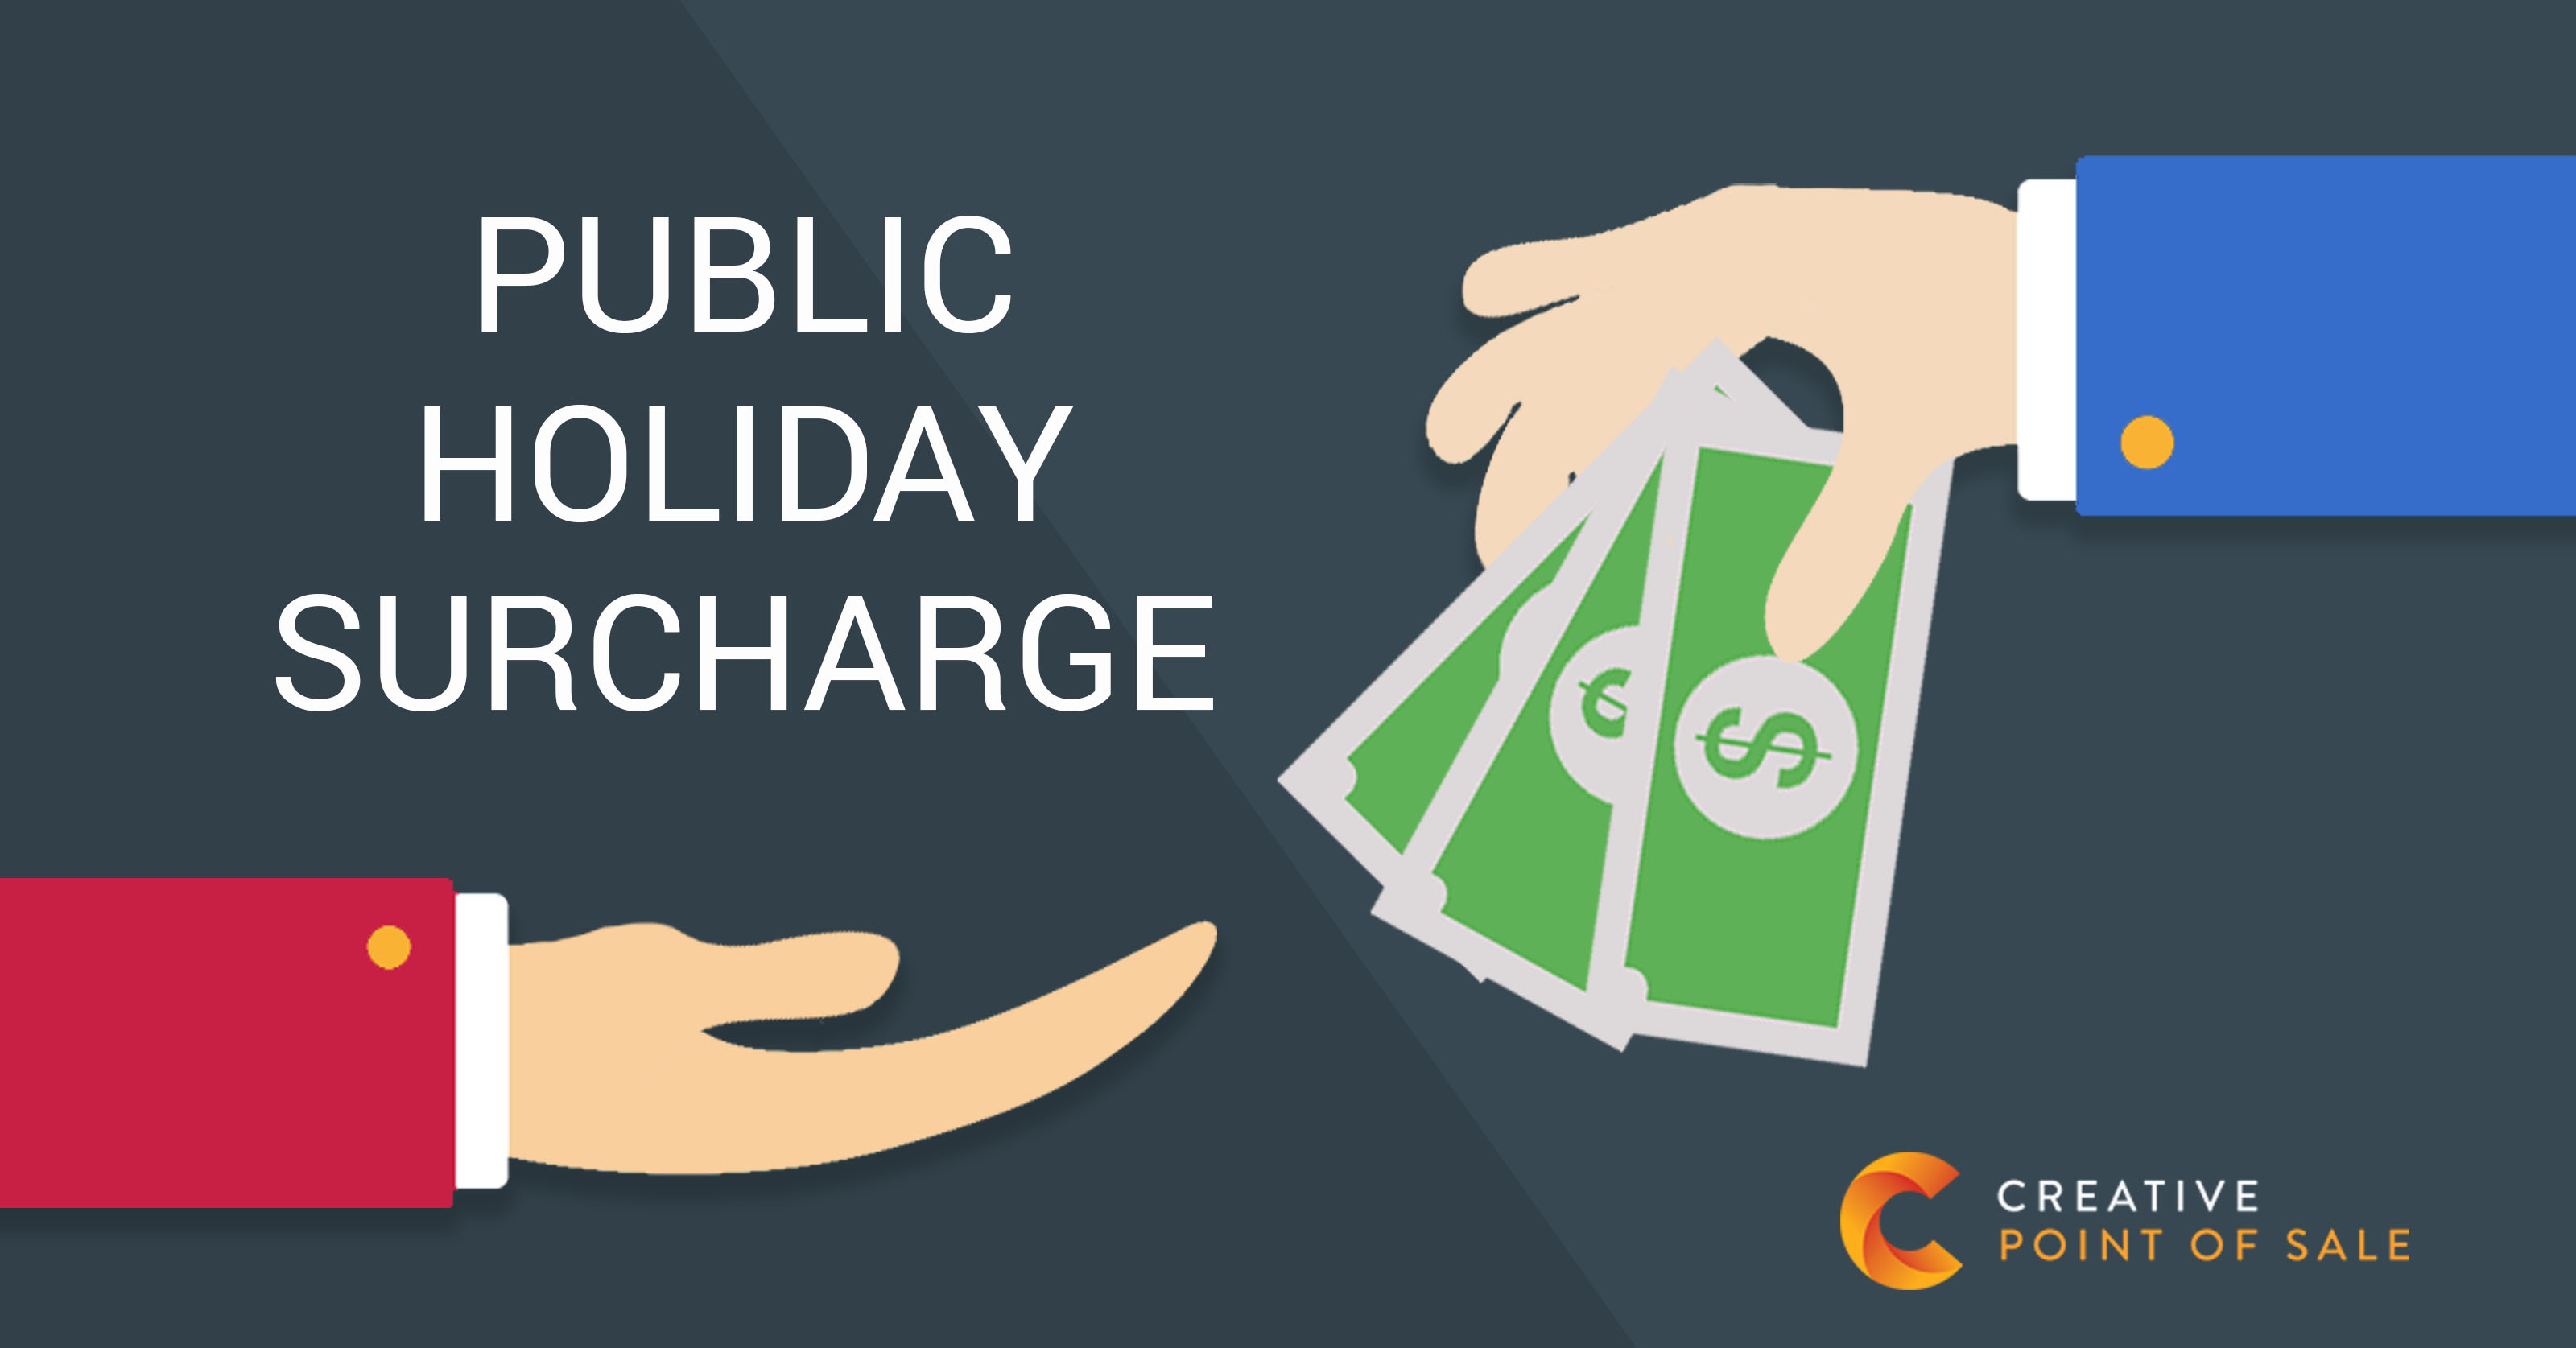 public holiday surcharge